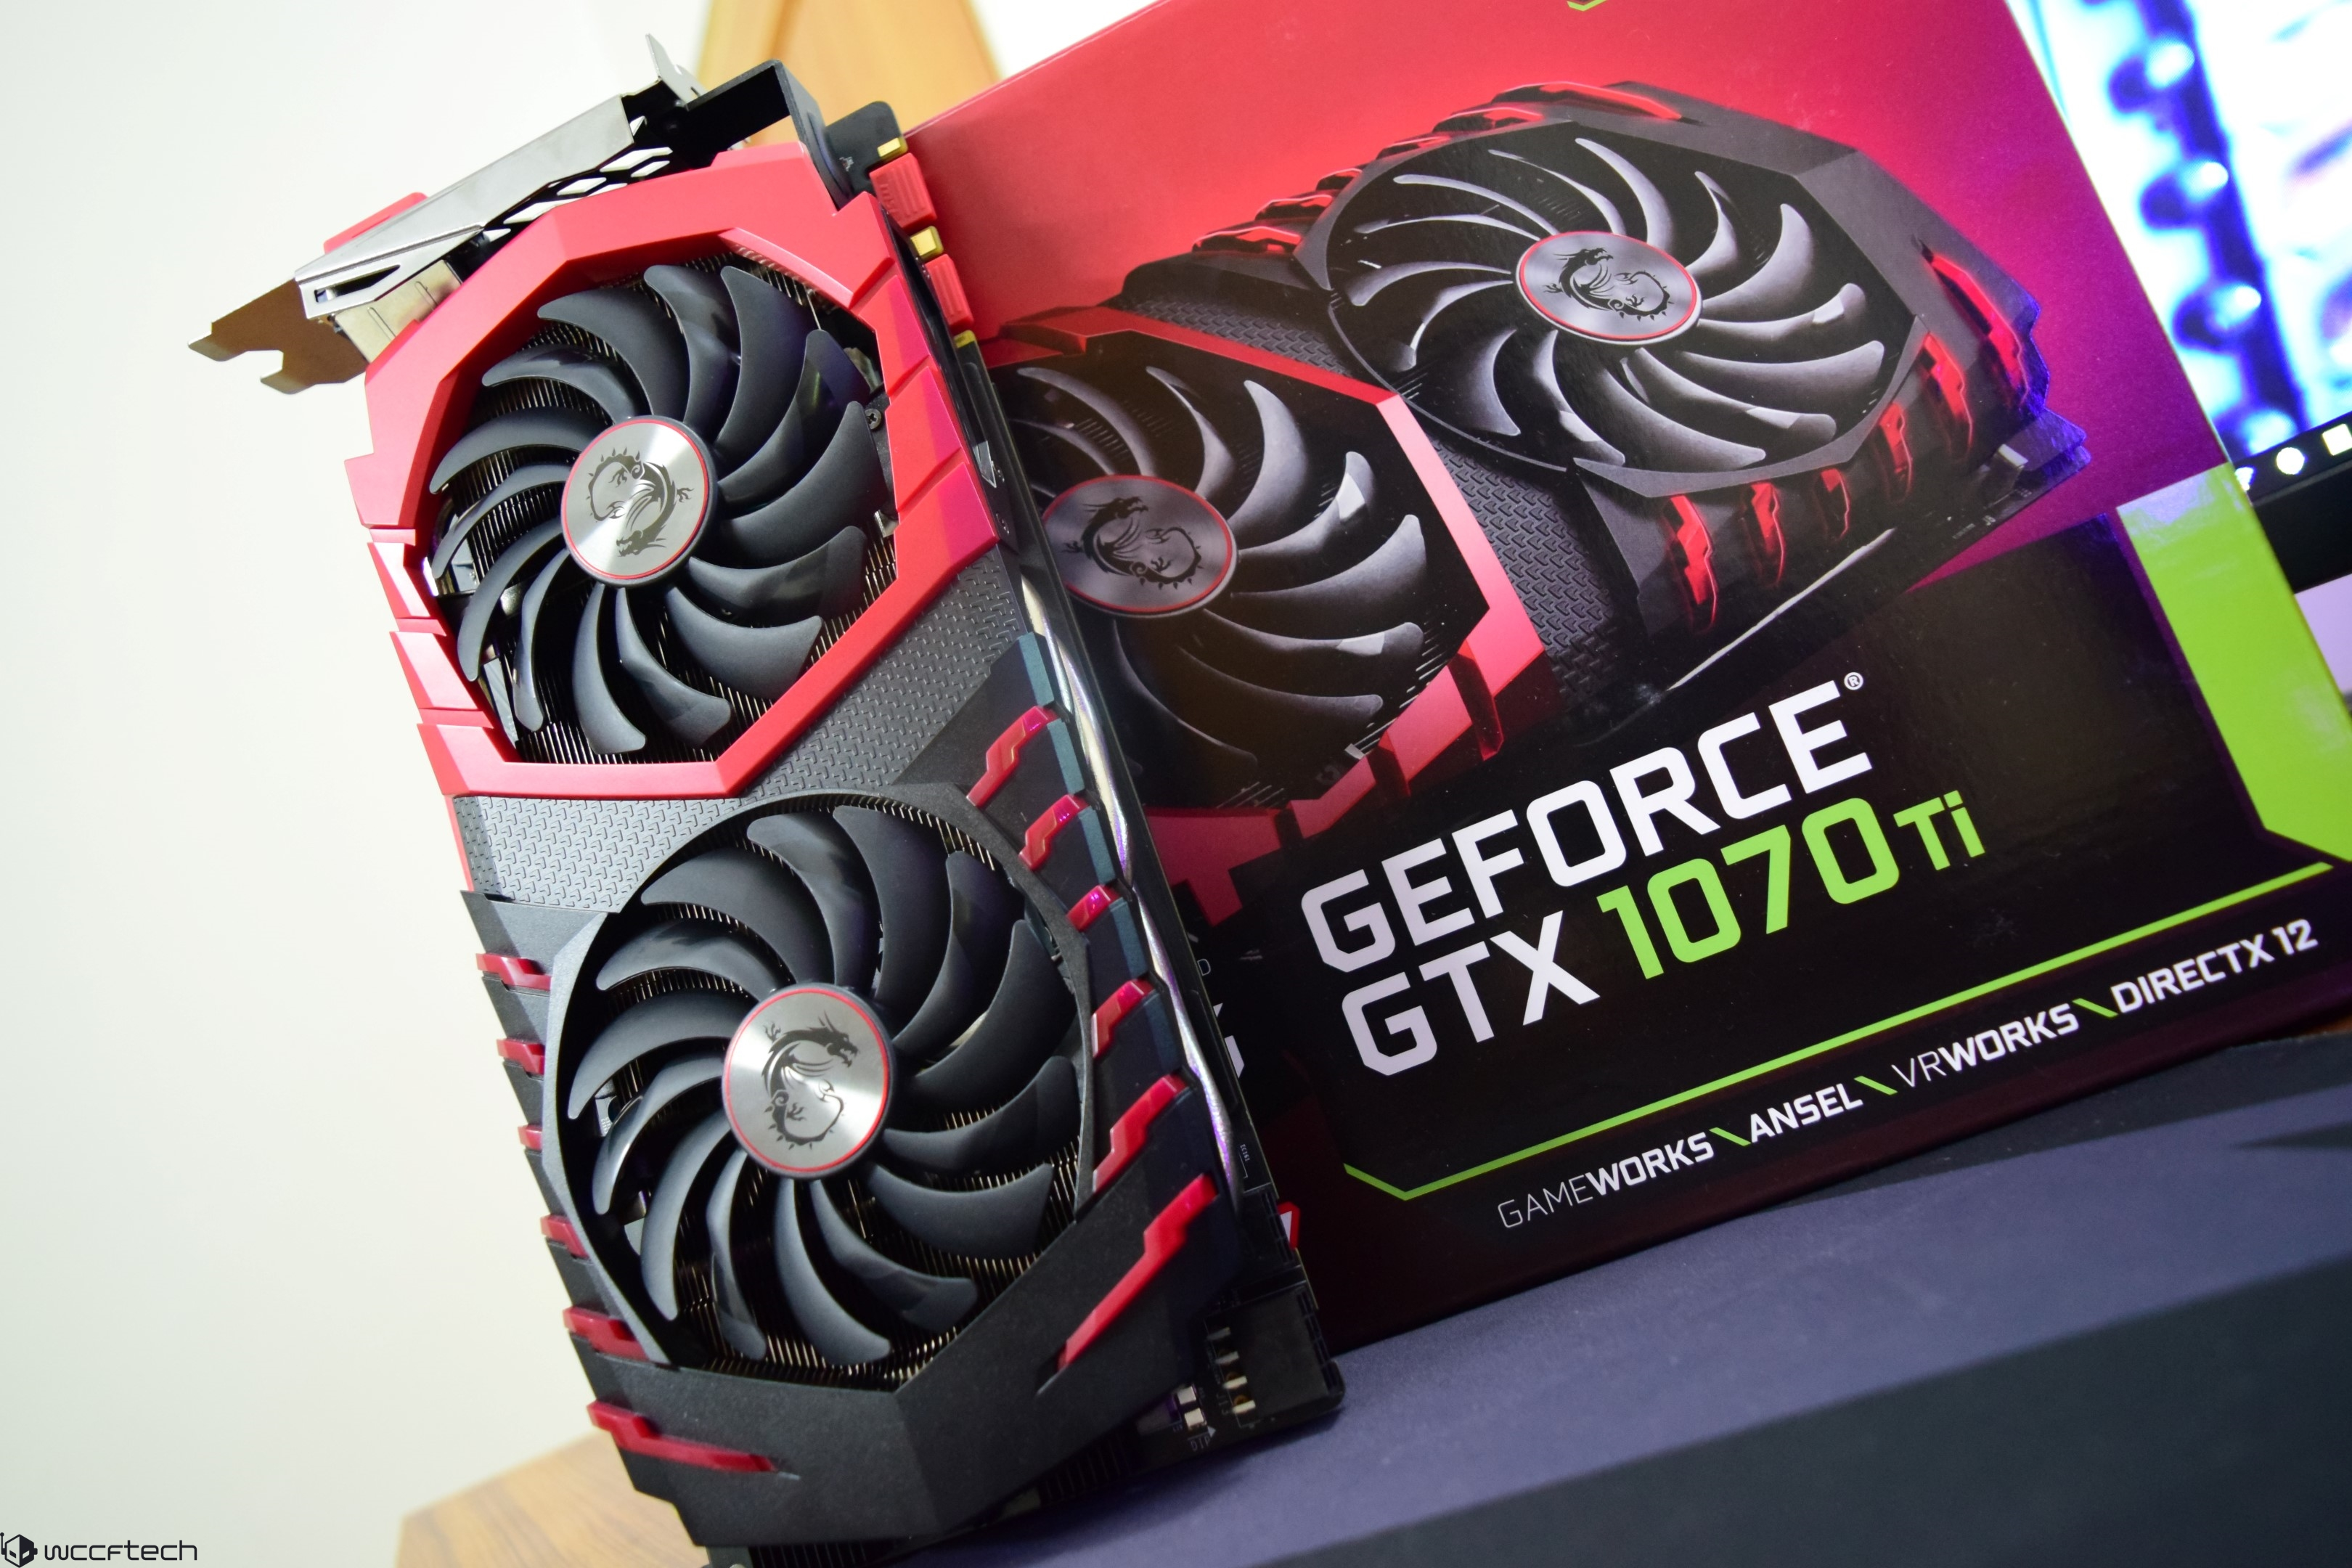 MSI GeForce GTX 1070 Ti Gaming 8 GB Graphics Card Review